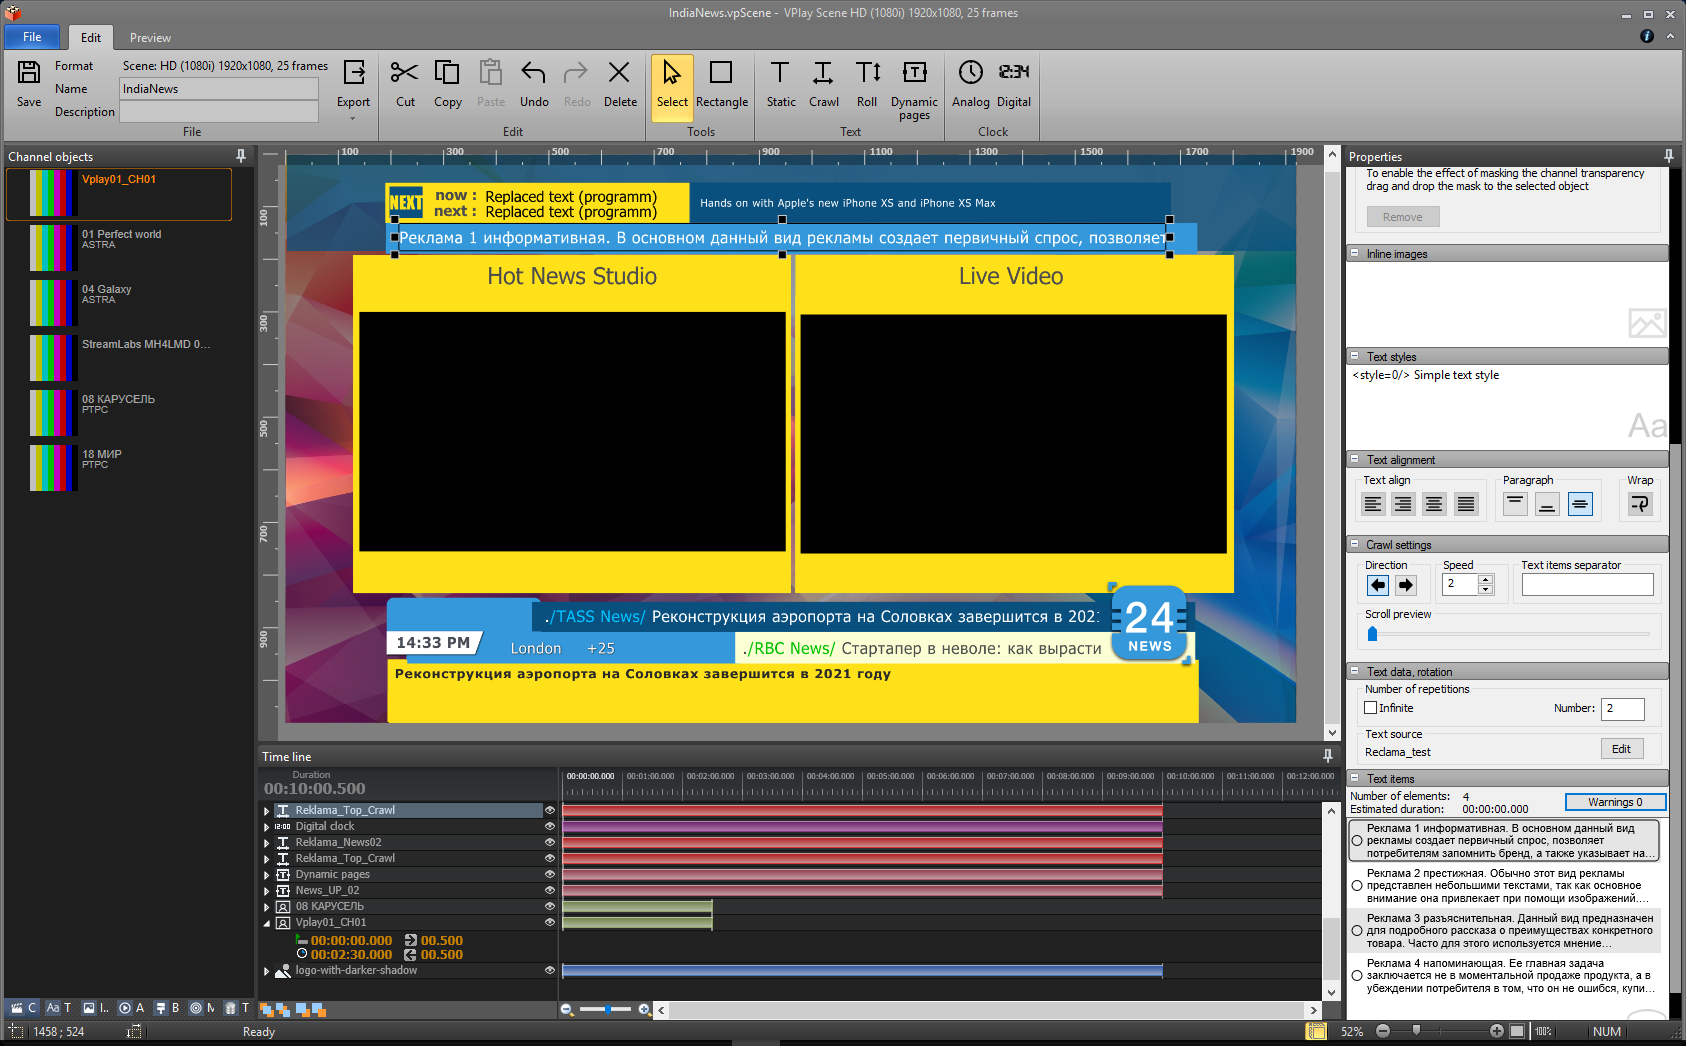 VPlay 4 1: a new release of the video playout software